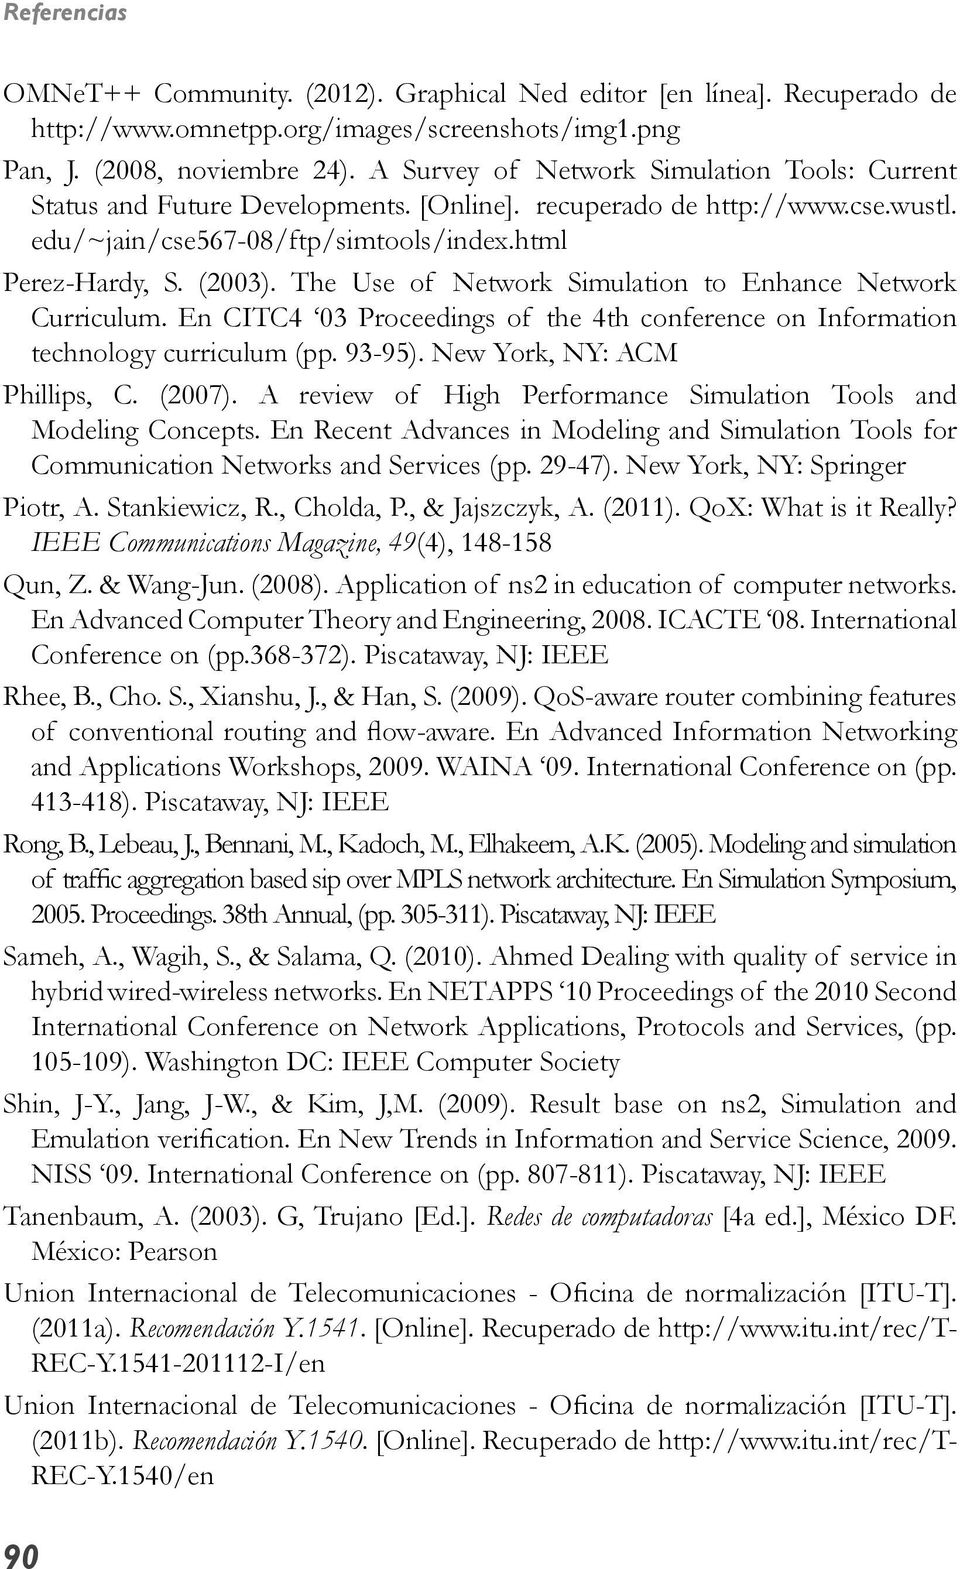 The Use of Network Simulation to Enhance Network Curriculum. En CITC4 03 Proceedings of the 4th conference on Information technology curriculum (pp. 93-95). New York, NY: ACM Phillips, C. (2007).